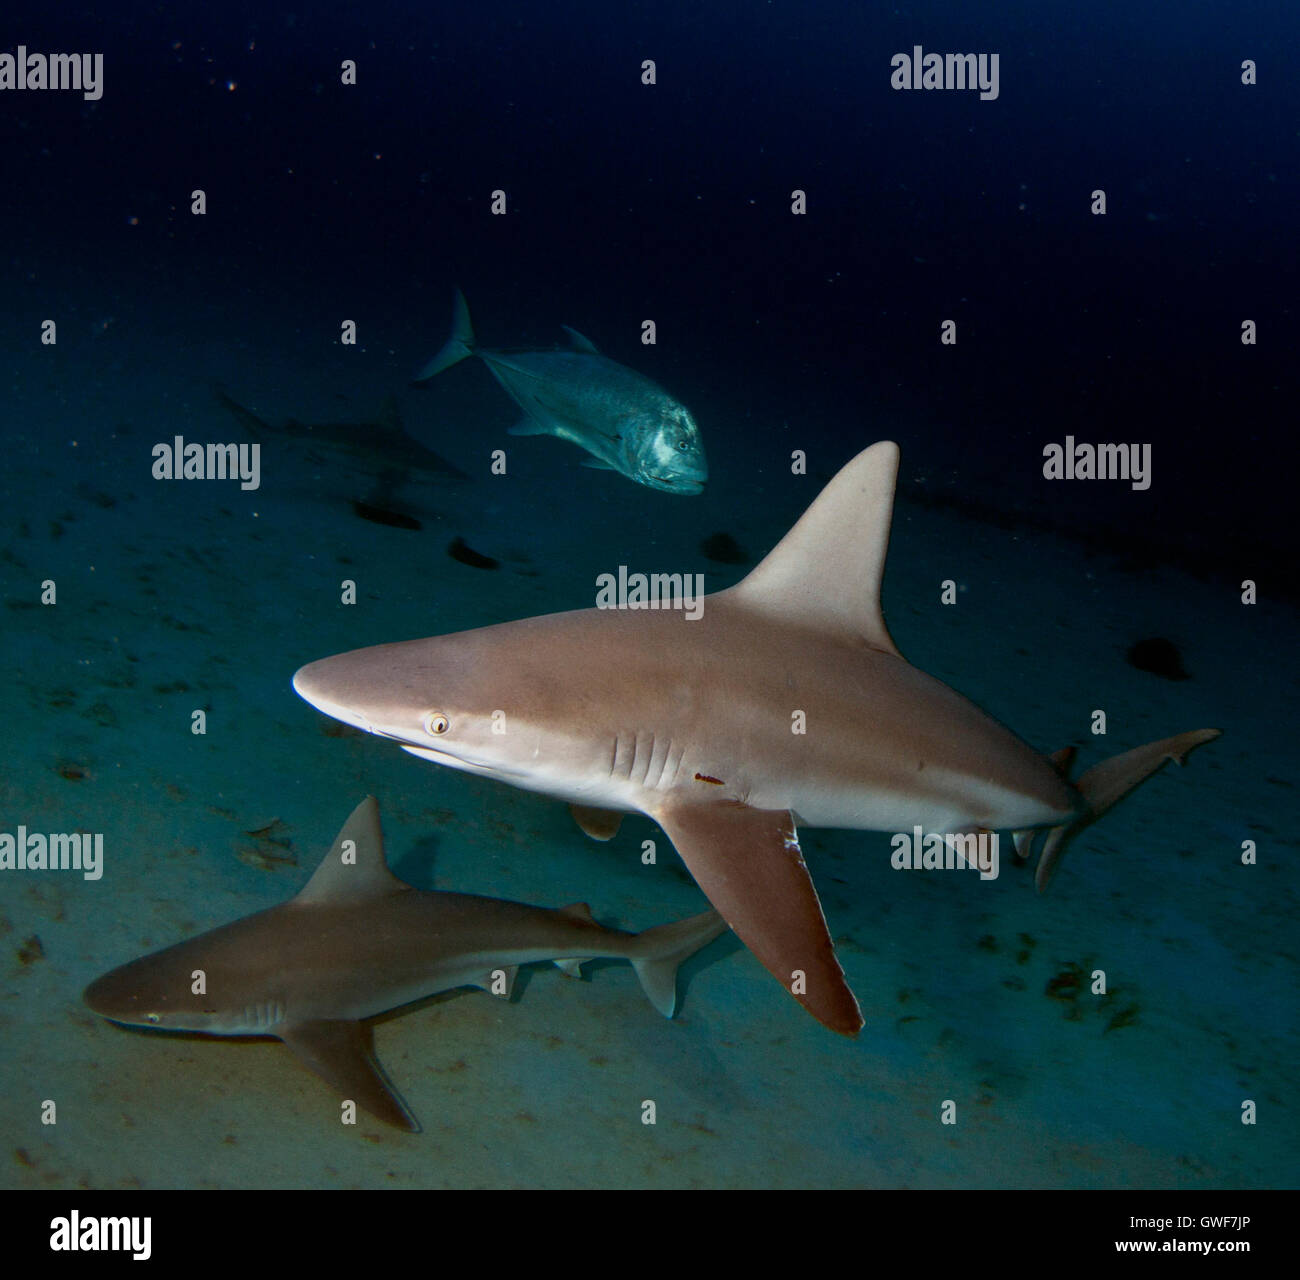 A Sandbar shark swims buzzes by one night offshore from the Big Island, Hawaii. - Stock Image